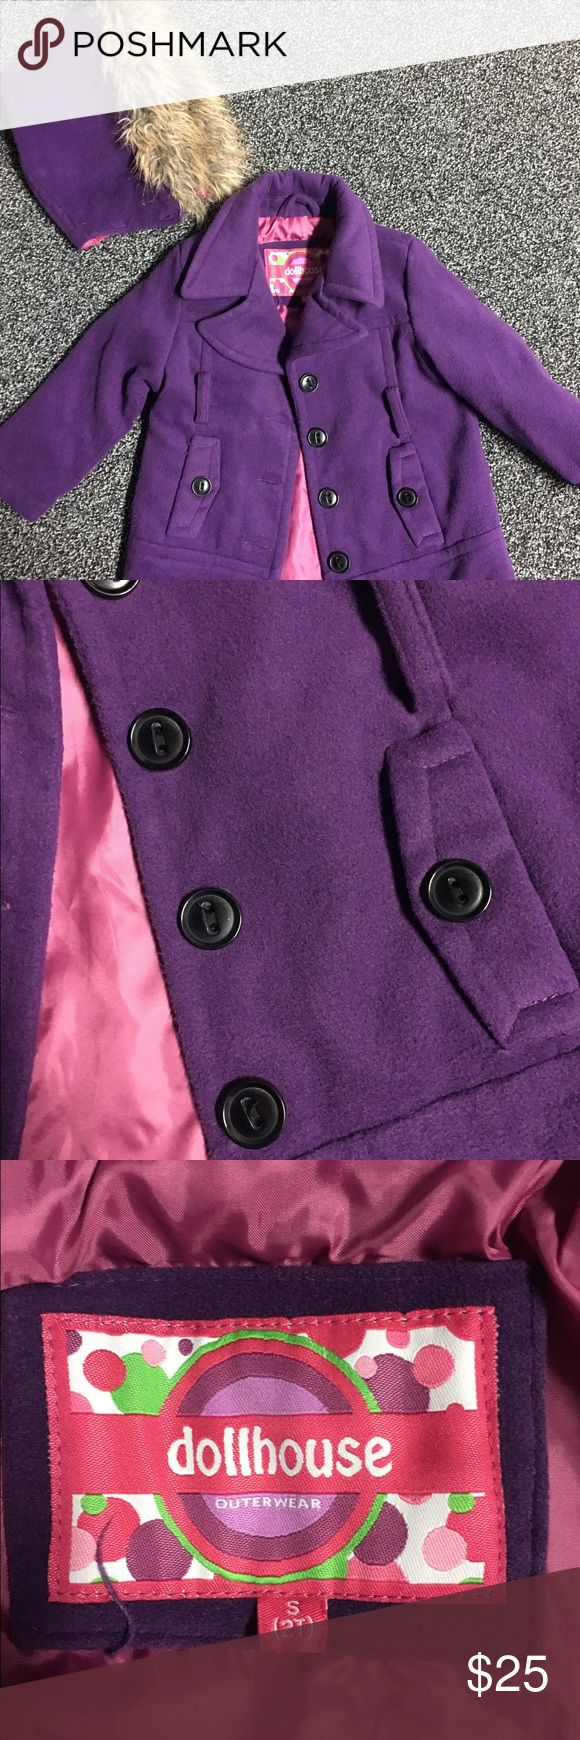 2T Dollhouse BNWOT girls peacoat Brand new without tags, tried on once in house but never had an opportunity to wear it out! 2T adorable purple peacoat with detachable fur trimmed hood! Loooove this coat!! Dollhouse Jackets & Coats Pea Coats